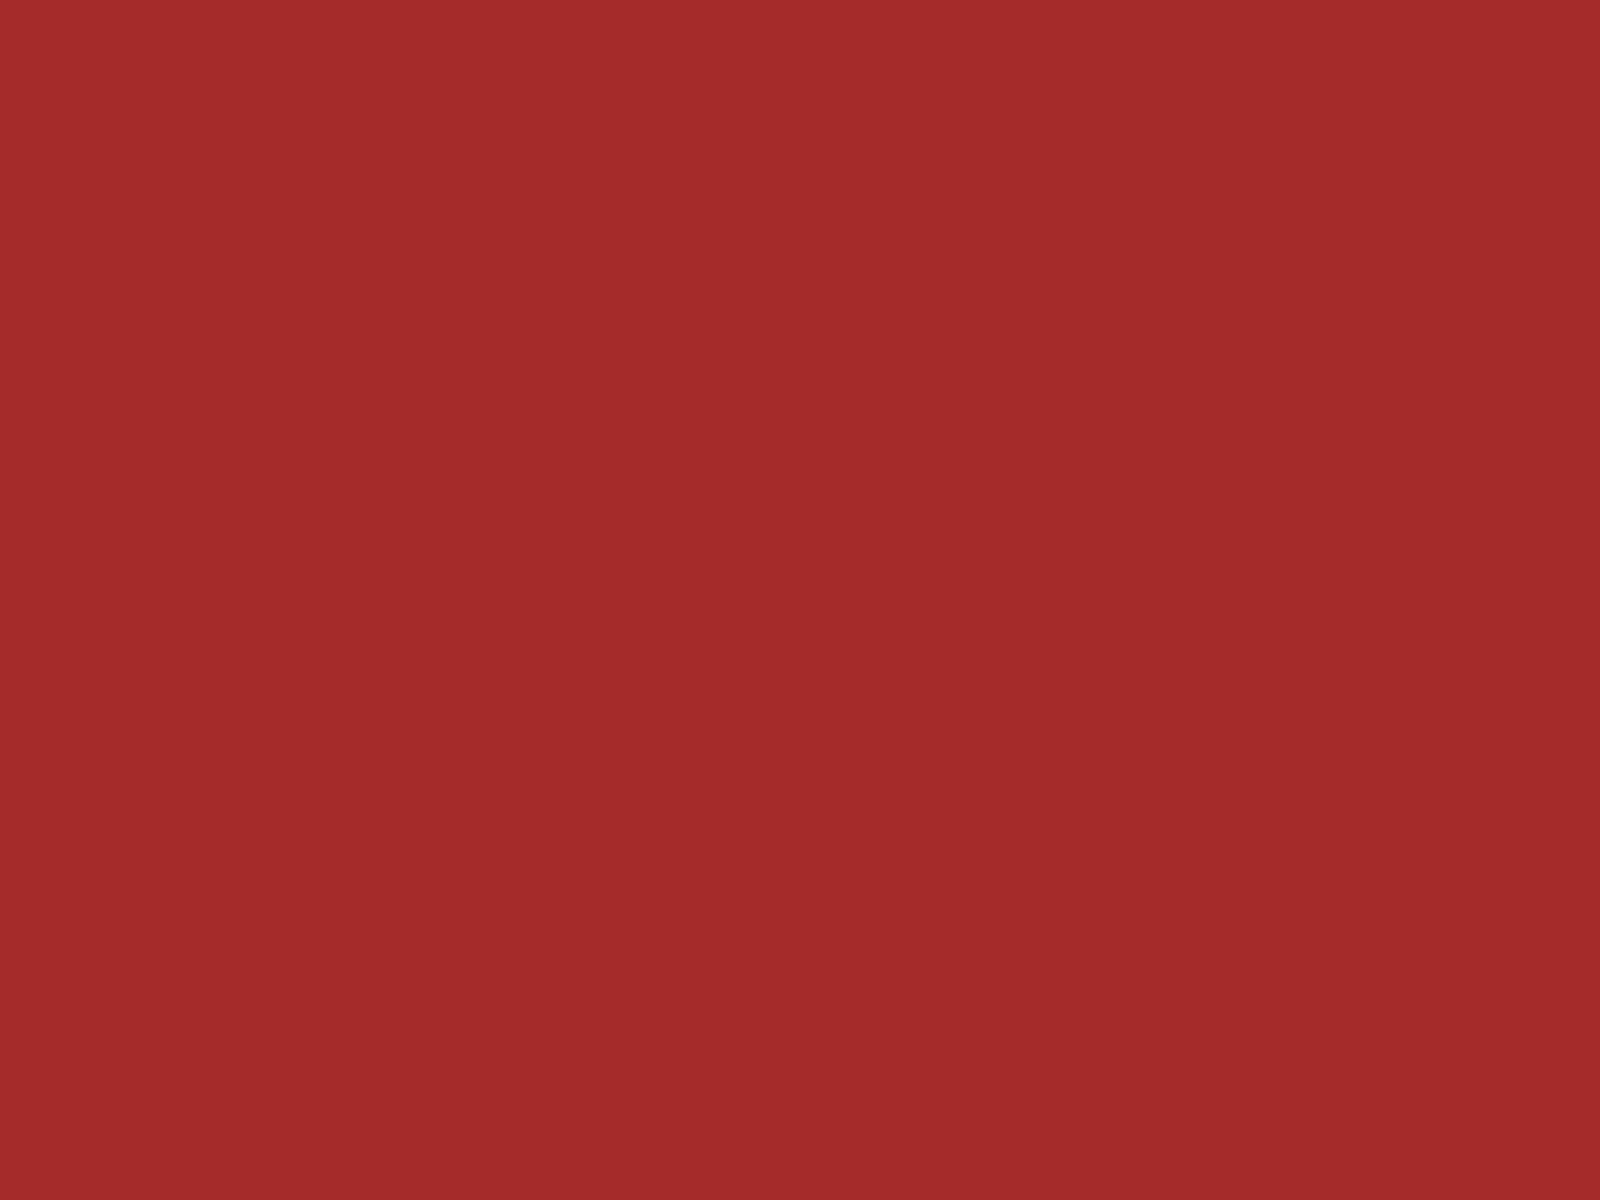 1600x1200 Red-brown Solid Color Background